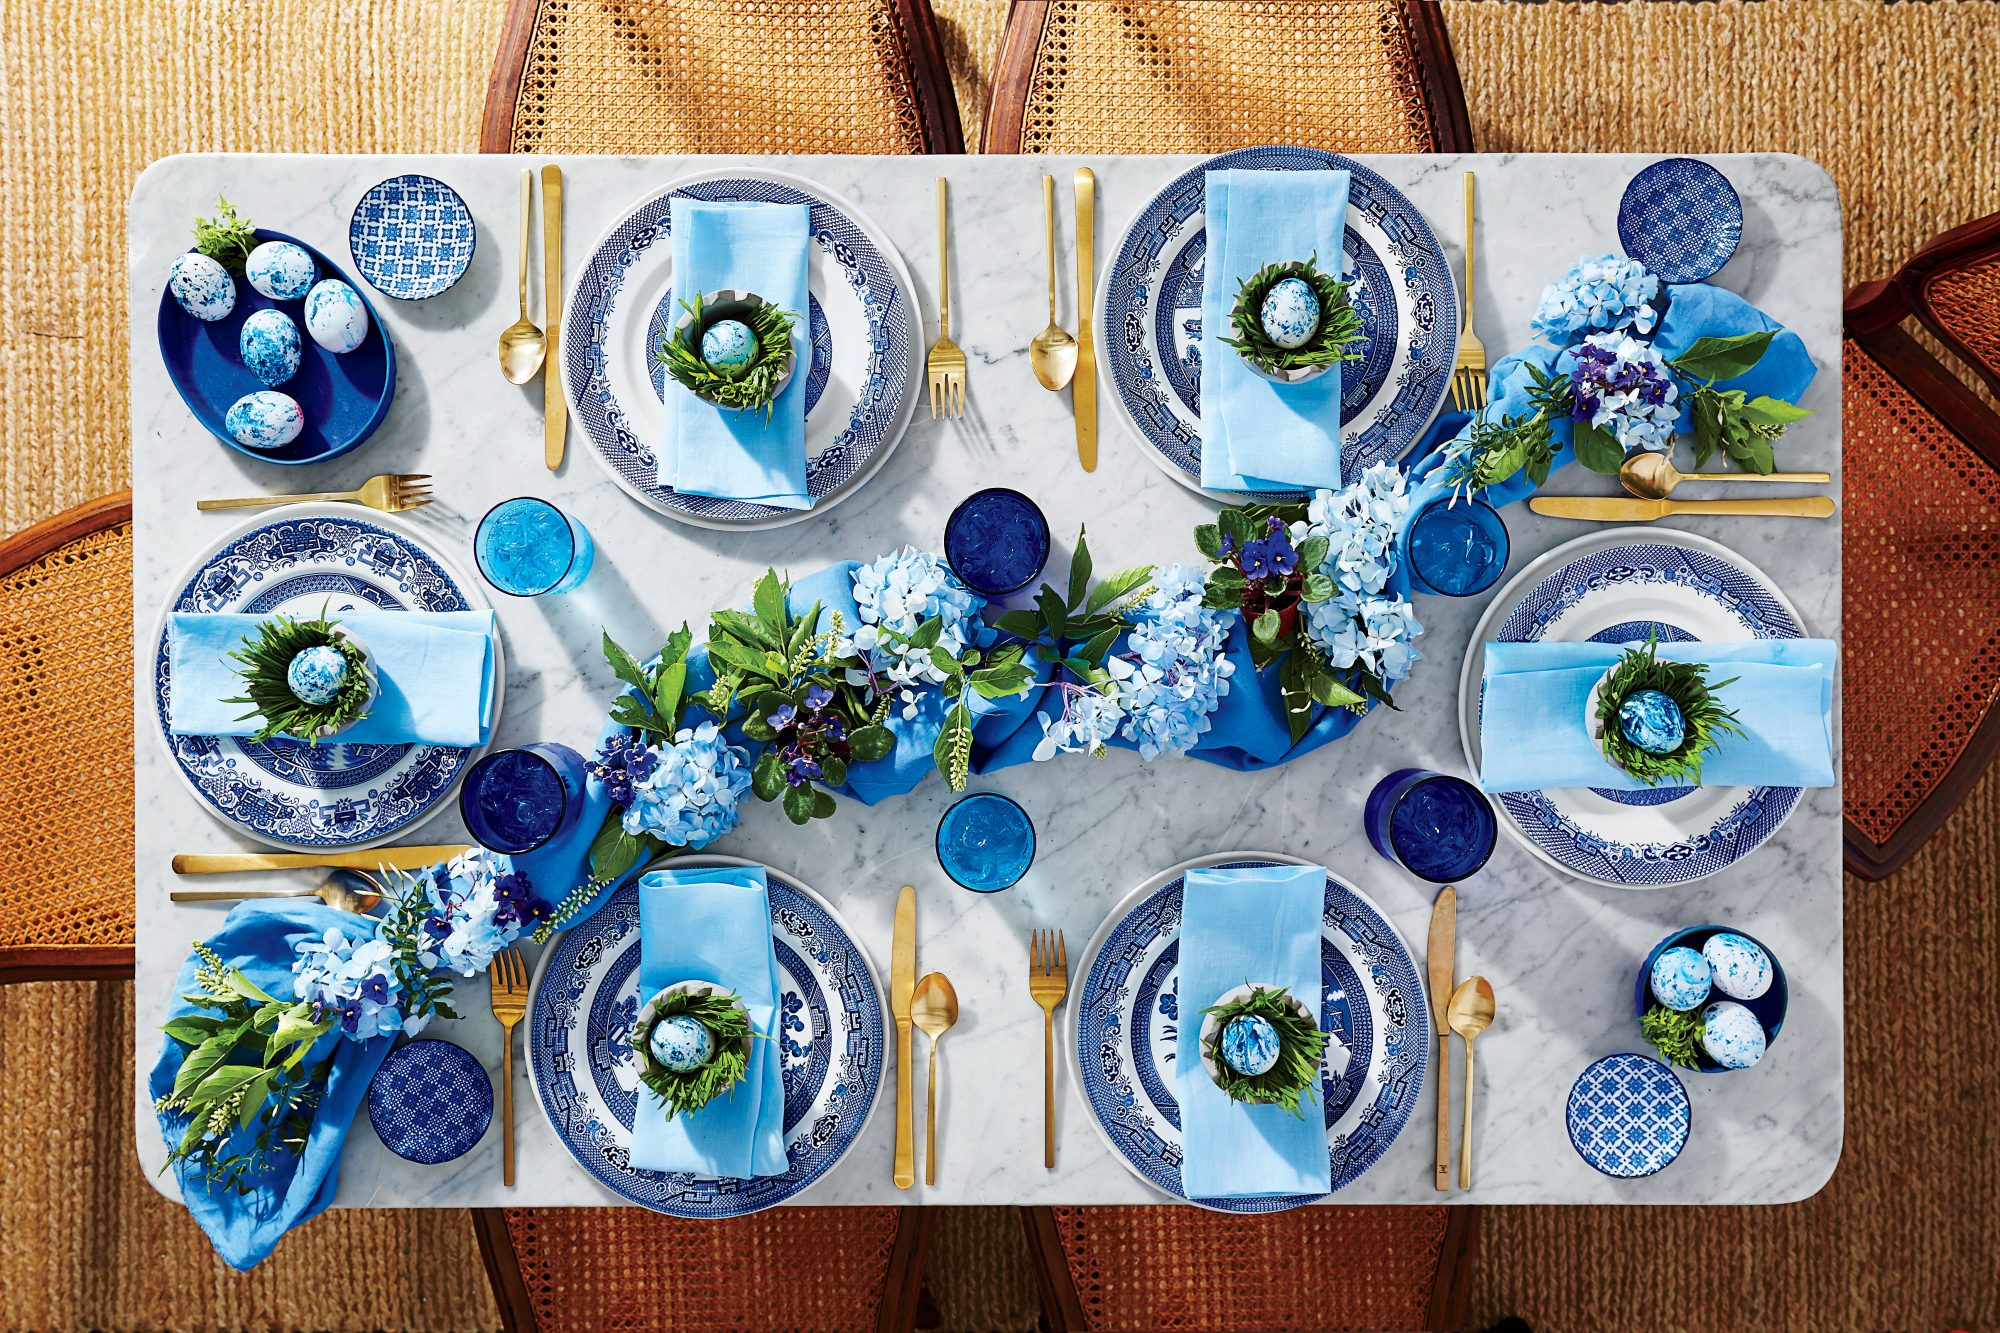 Blue and White China why Hydrangea Blooms Set for Easter